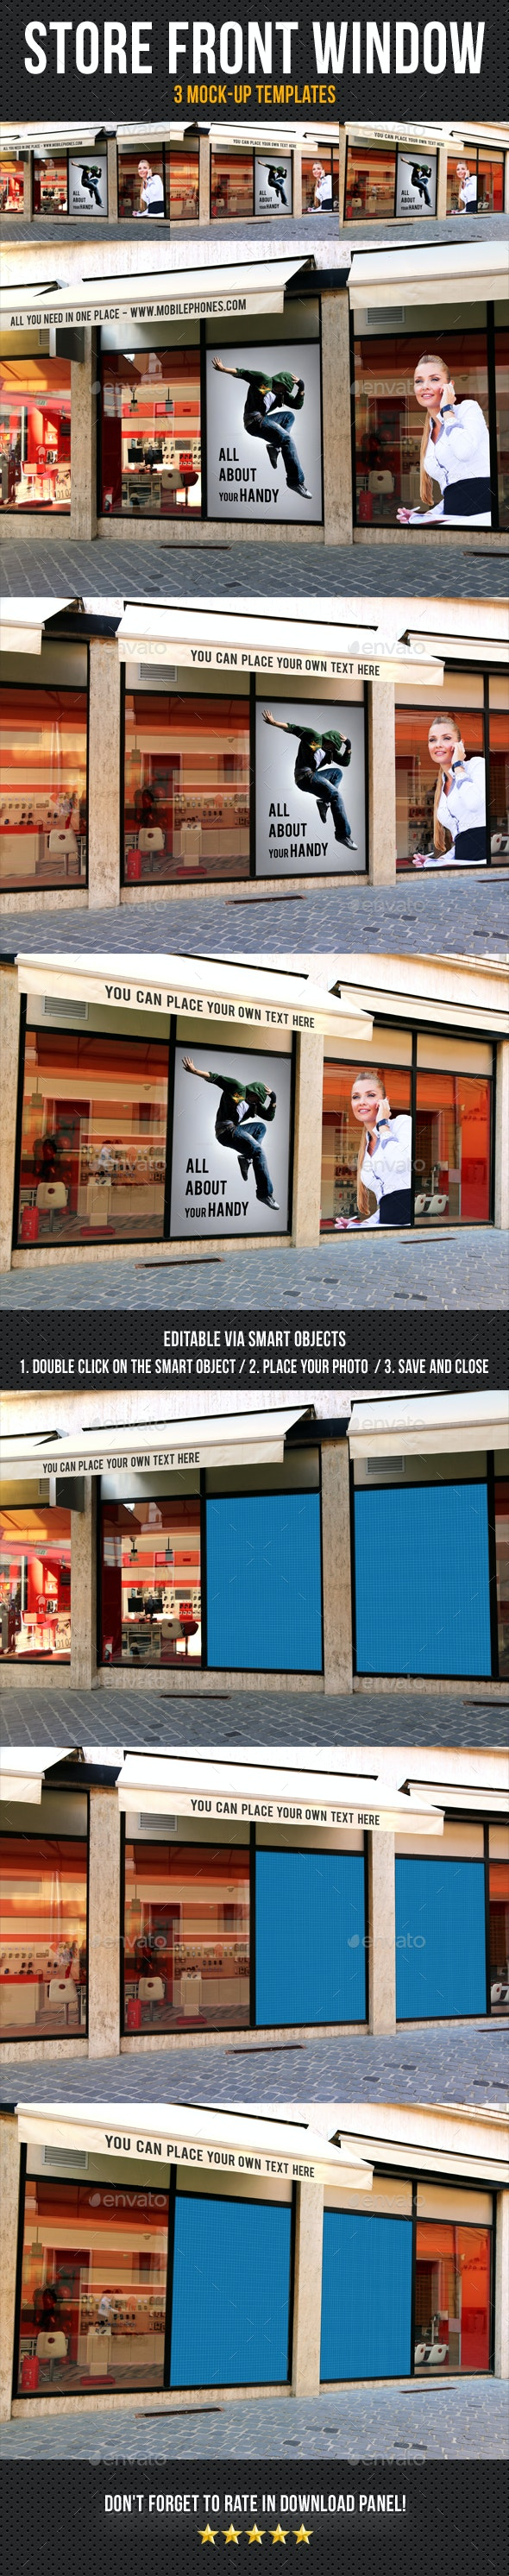 Store Front Window Mock-Up Pack 03 - Posters Print